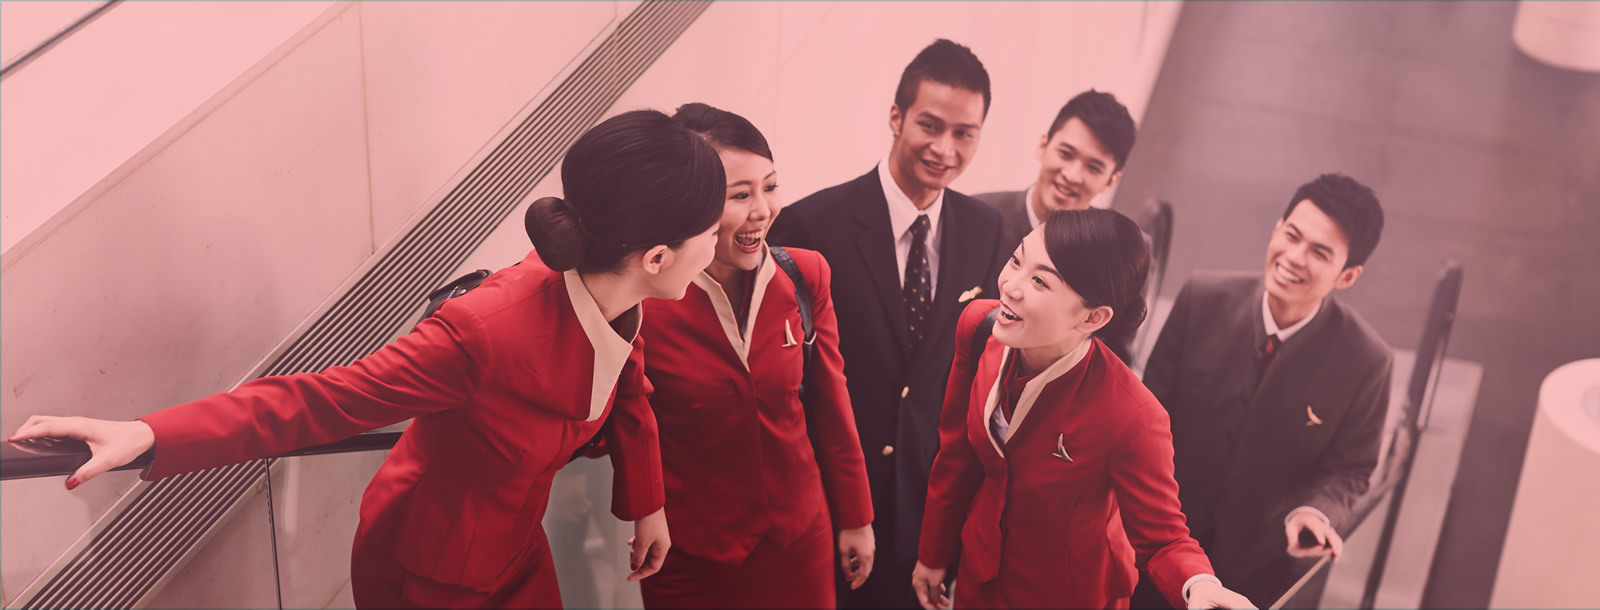 Fly gosh cathay pacific cabin crew recruitment base in for Cabin crew recruitment 2017